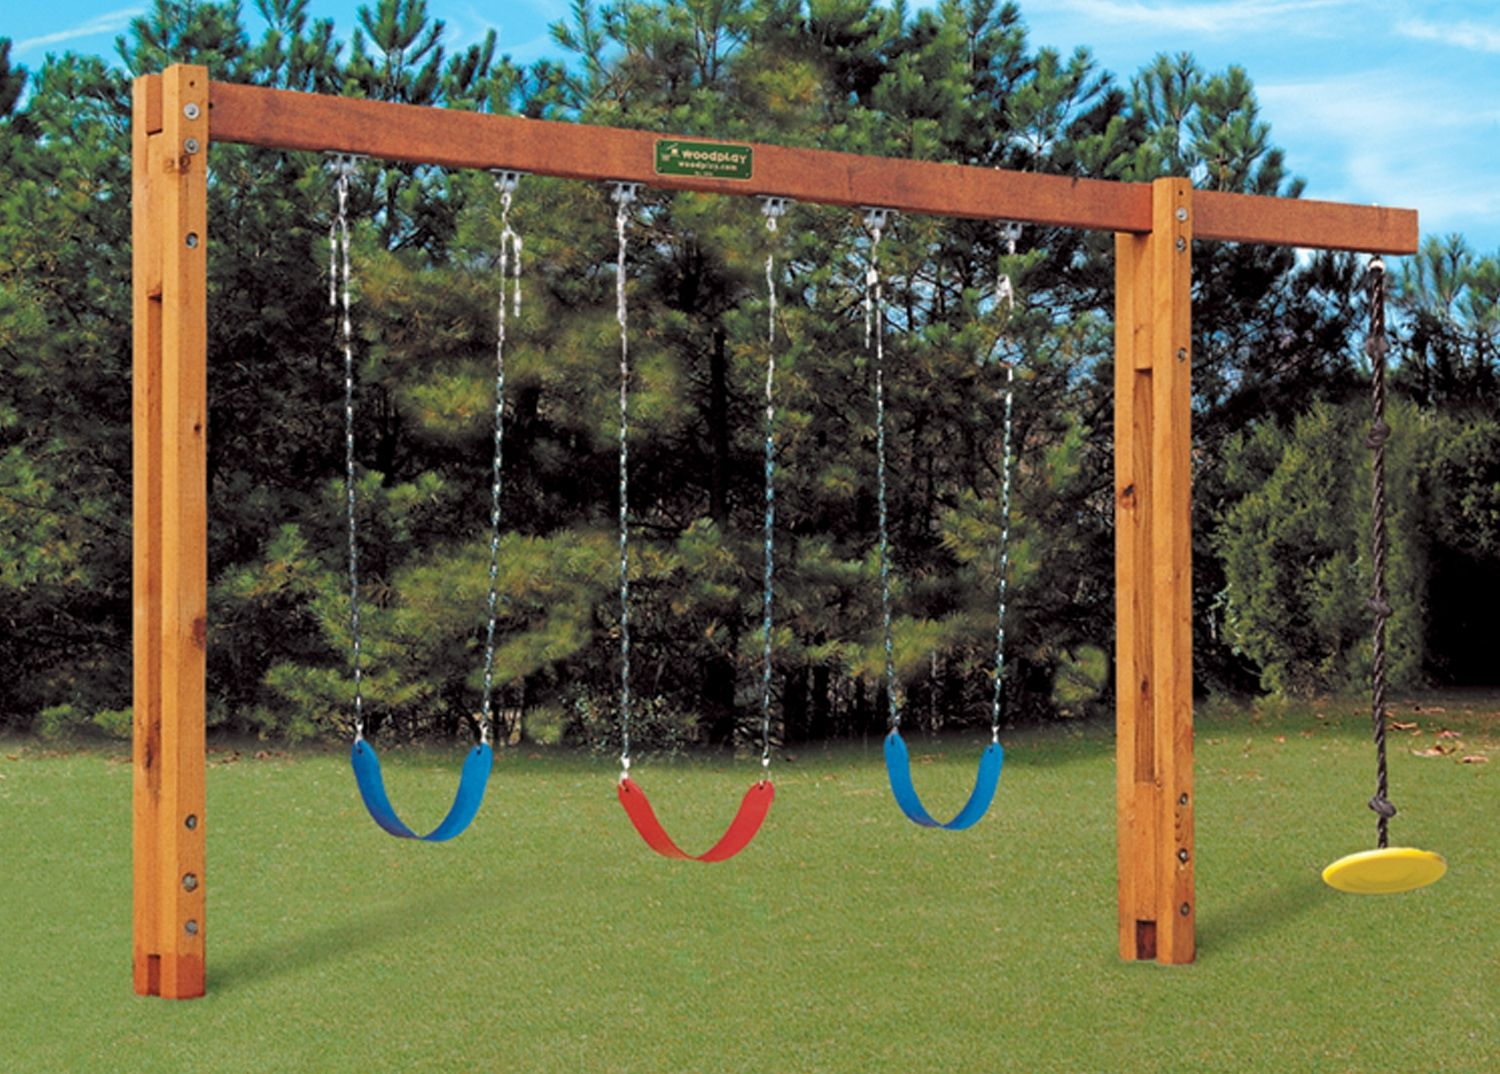 how to build an a frame swing set